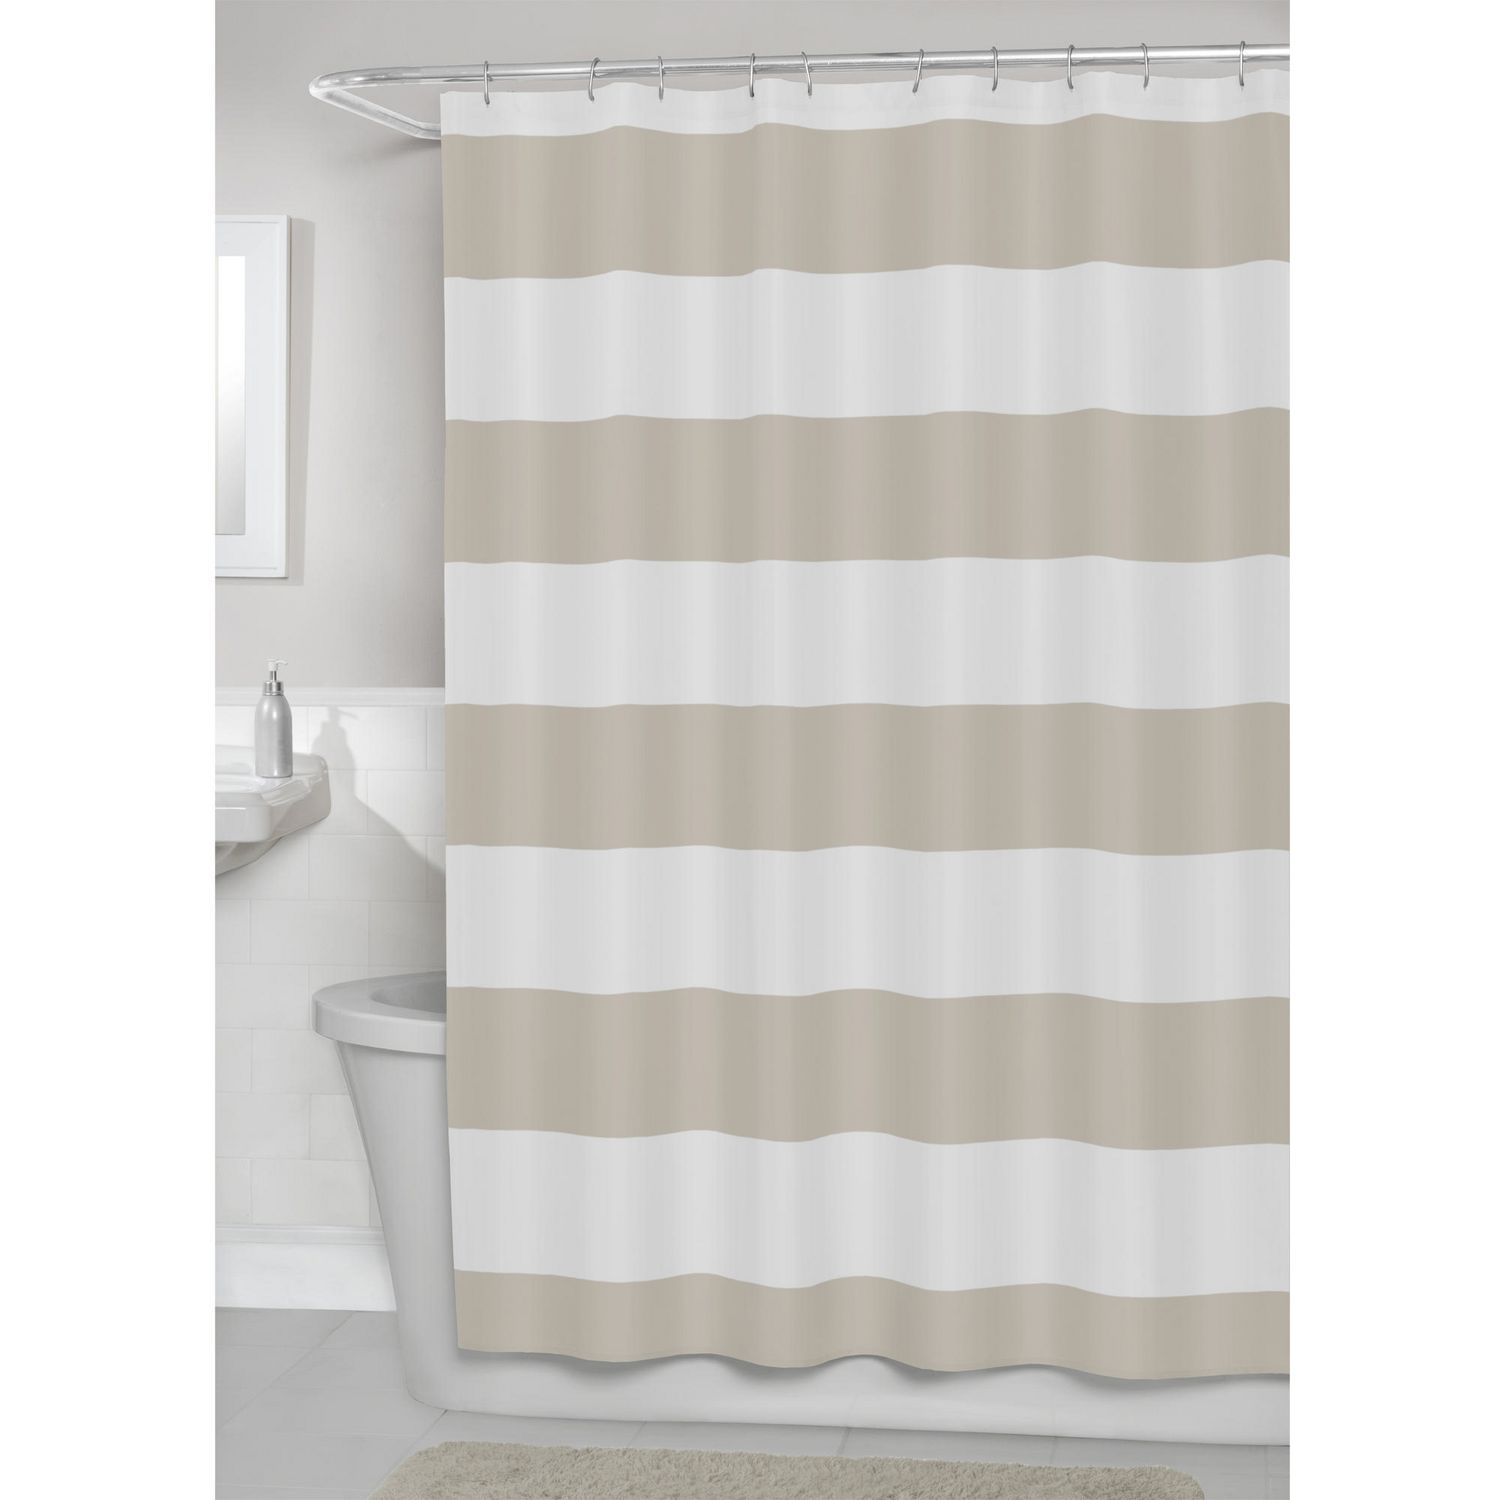 tan and gray shower curtain. tan and gray shower curtain